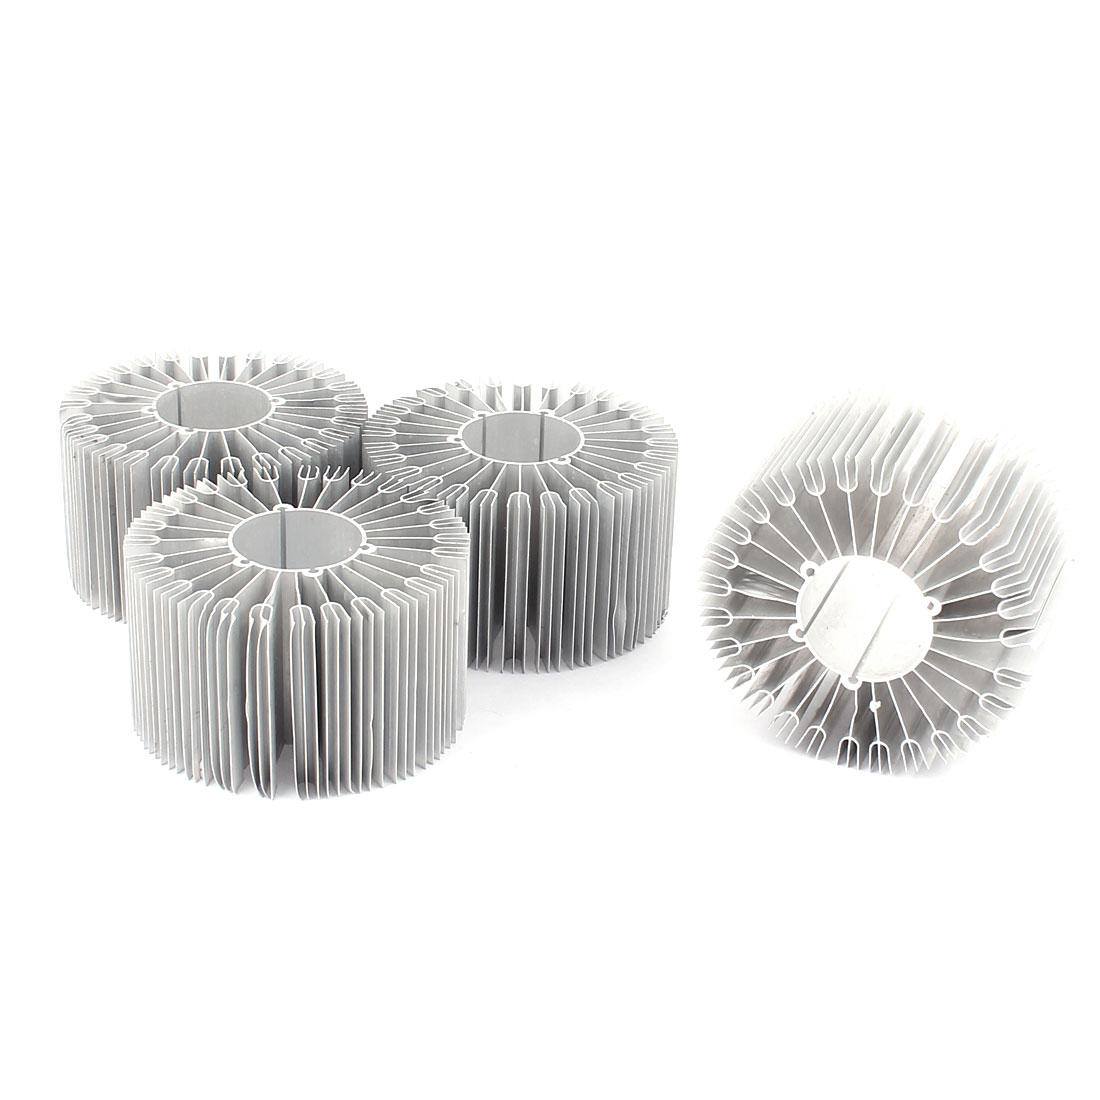 4Pcs Led Lamp Aluminum Heatsink Radiator Cooling Fin 86mmx32mmx50mm Silver Tone